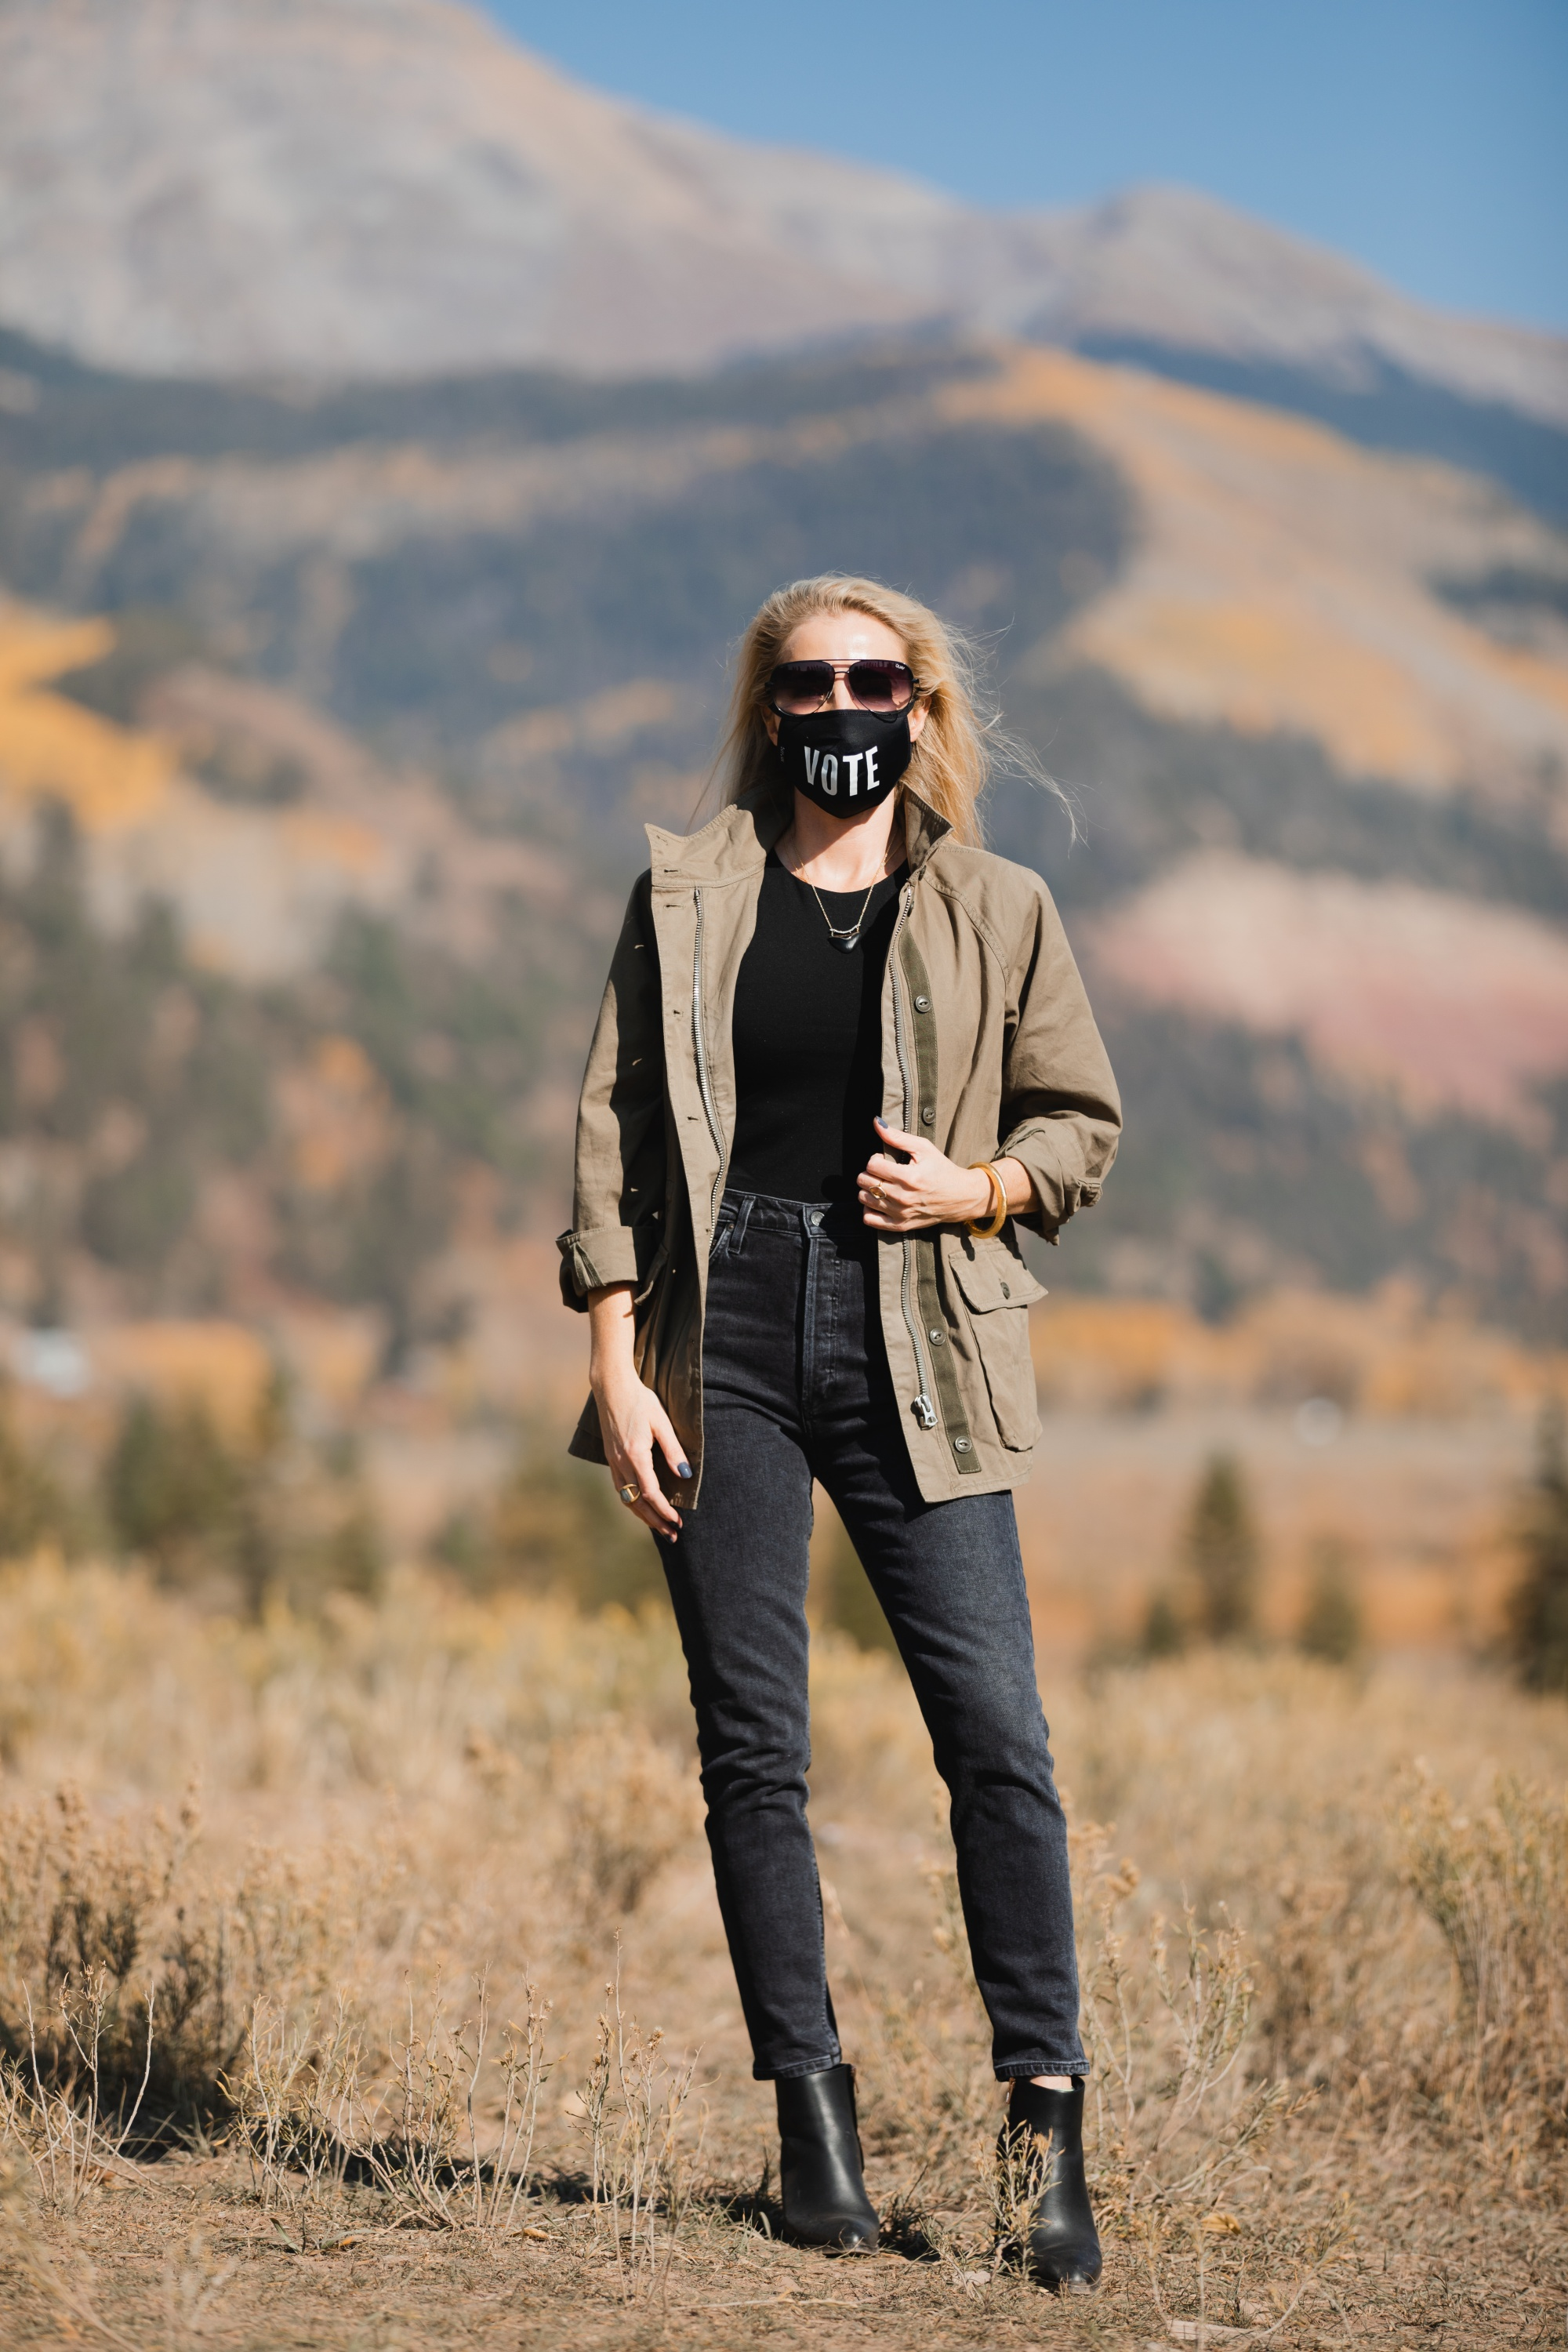 How To Wear A Cargo Jacket, Erin Busbee of Busbee Style wearing a green cargo jacket by rag & bone, black muscle tee tank by Aqua, gray wash Nico slim fit jeans by Agolde, QUAY sunglasses, Vote mask, and Alexander Wang cutout booties from Bloomingdale's in Telluride, Colorado